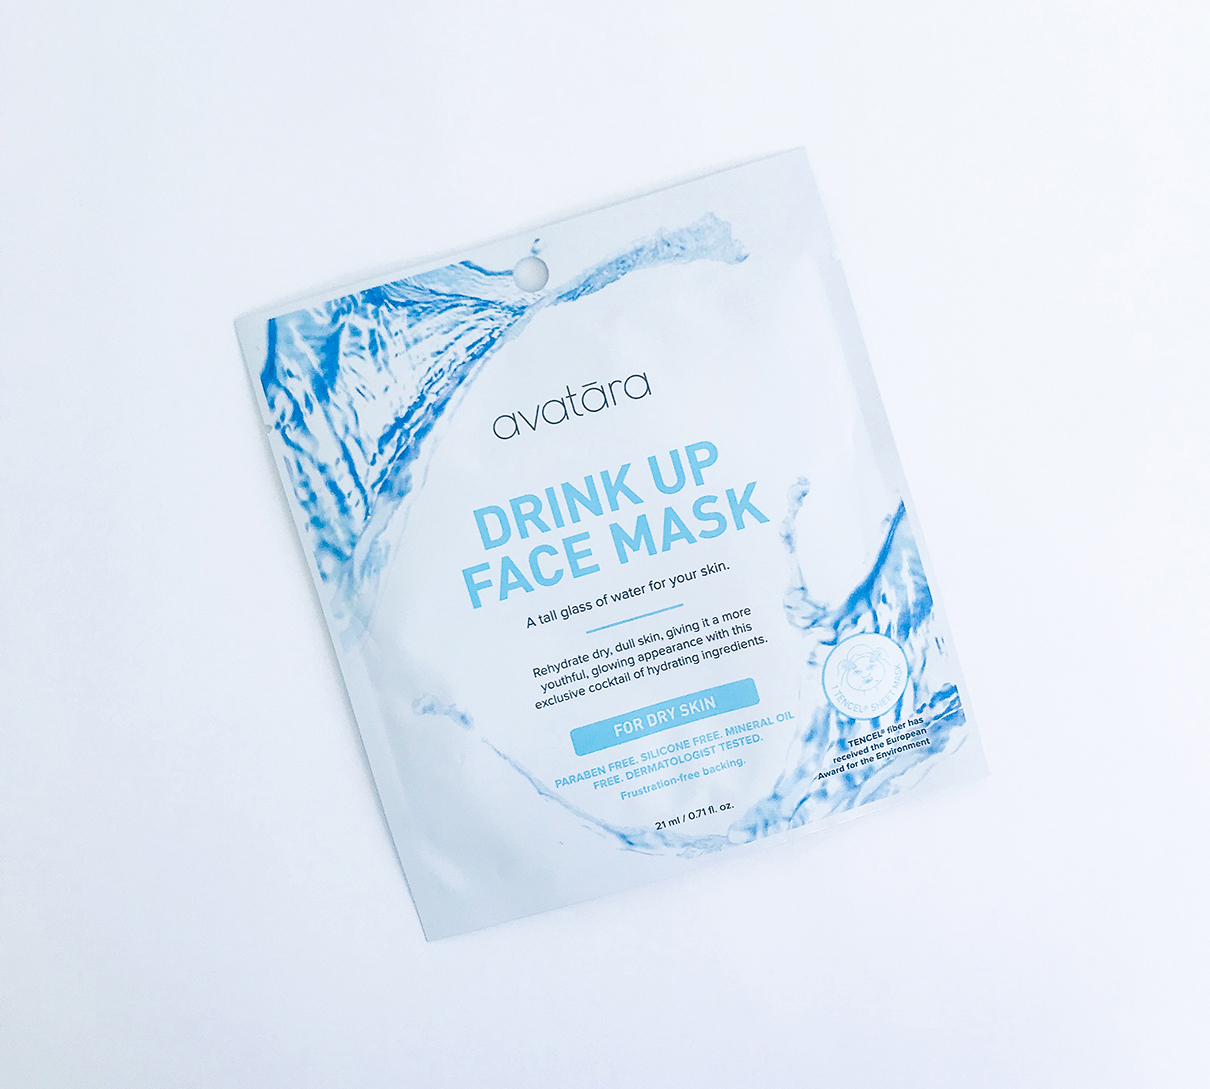 Drink Up Face Mask - FOR DRY SKINA tall glass of water for your skin.Rehydrate dry, dull skin, giving it more youthful, glowing appearance with this exclusive cocktail of hydrating ingredients.PARABEN FREE, SILICONE FREE, MINERAL OIL FREE, DERMATOLOGIST TESTED.R70.00 - AV001